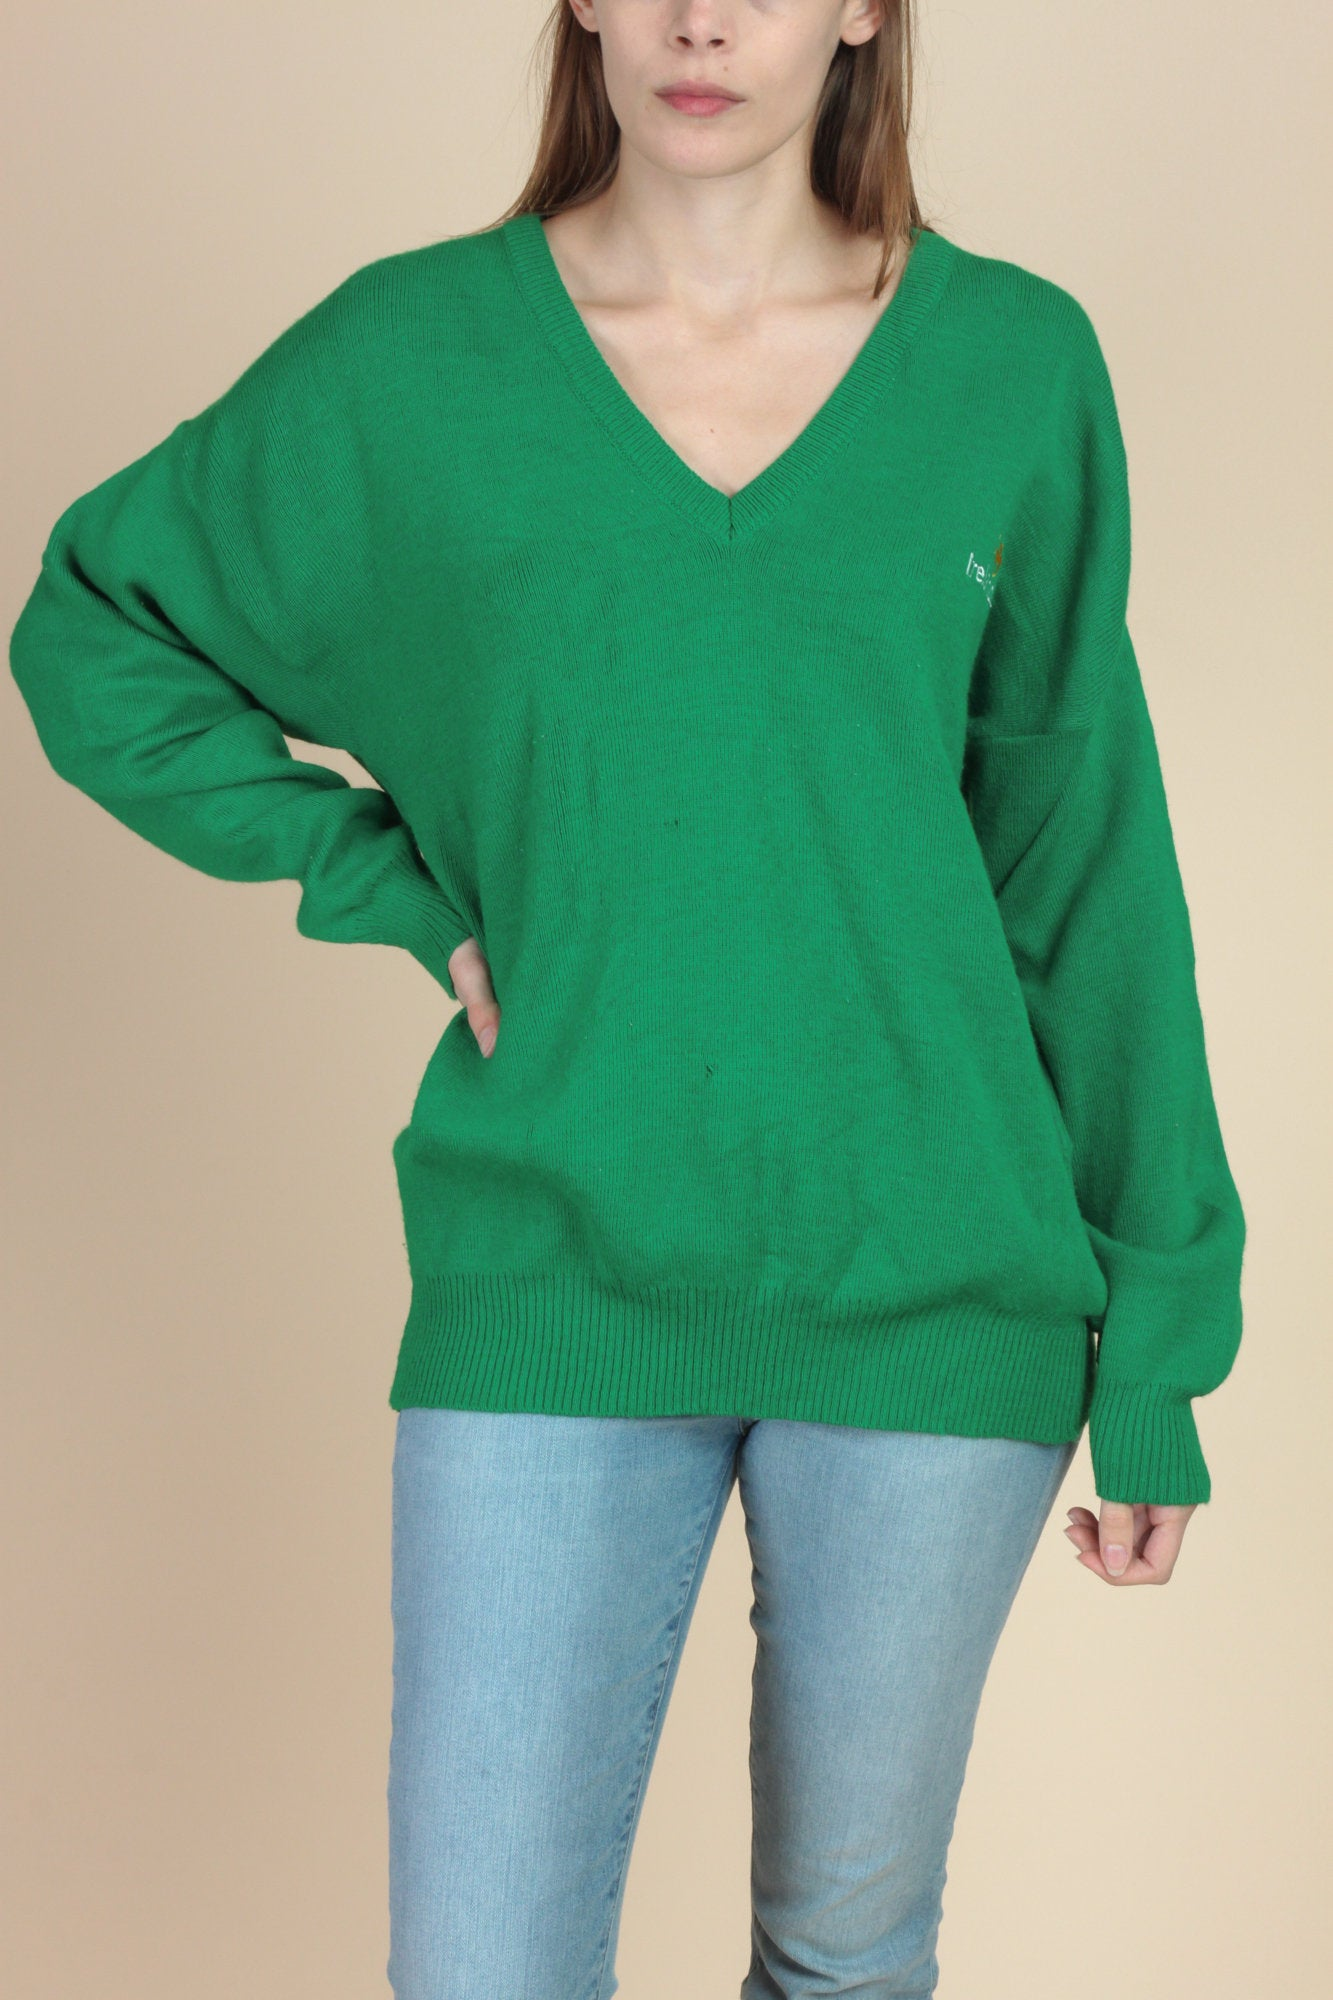 Vintage Irish Shamrock Sweater - Extra Large